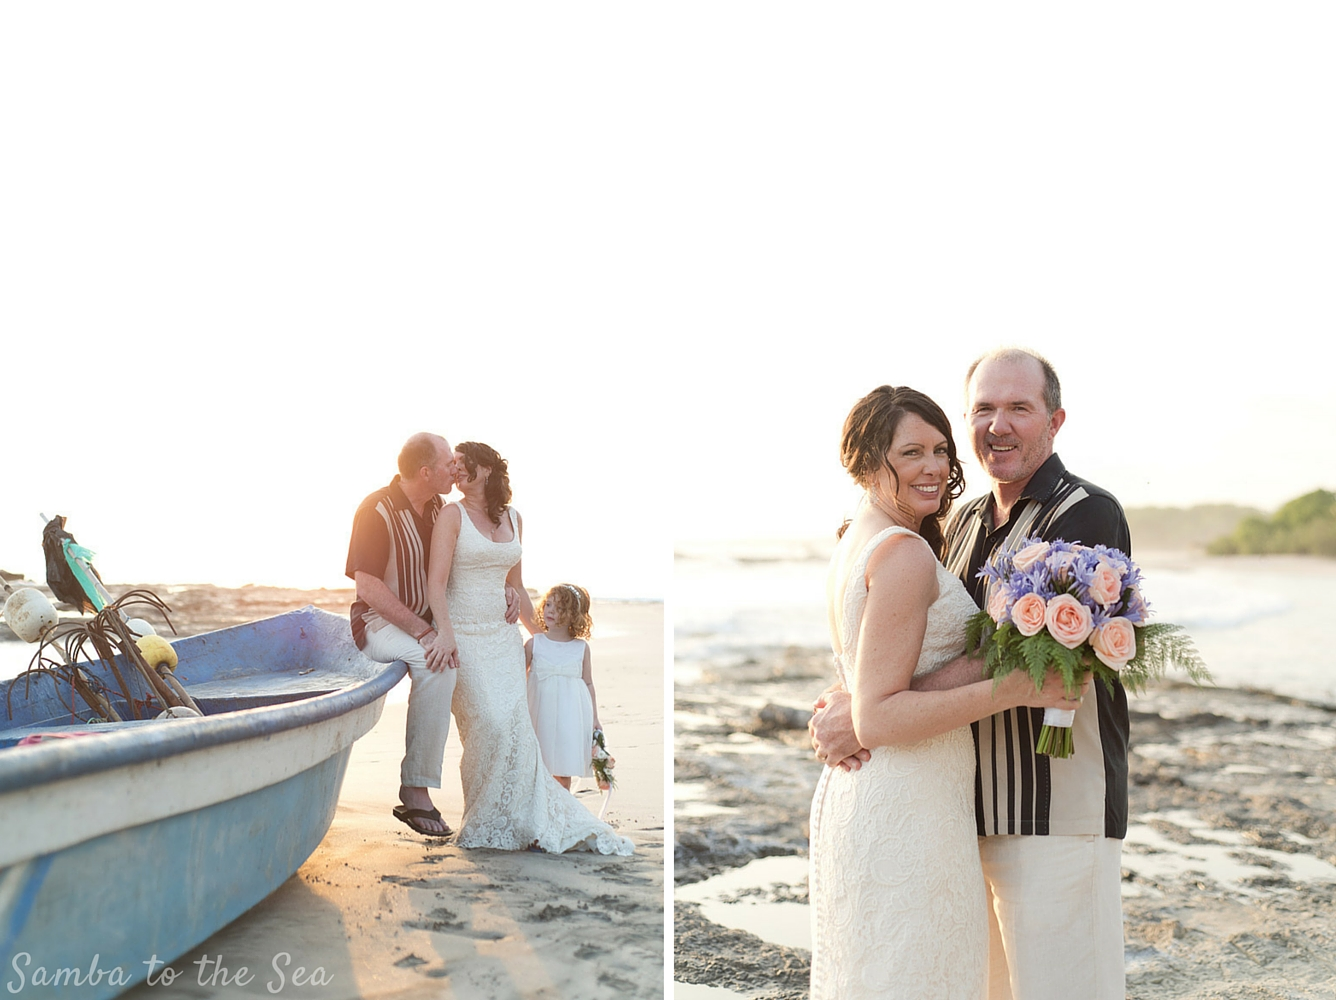 Wedding in Playa Pelada, Nosara, Costa Rica. Photographed by Kristen M. Brown, Samba to the Sea Photography.